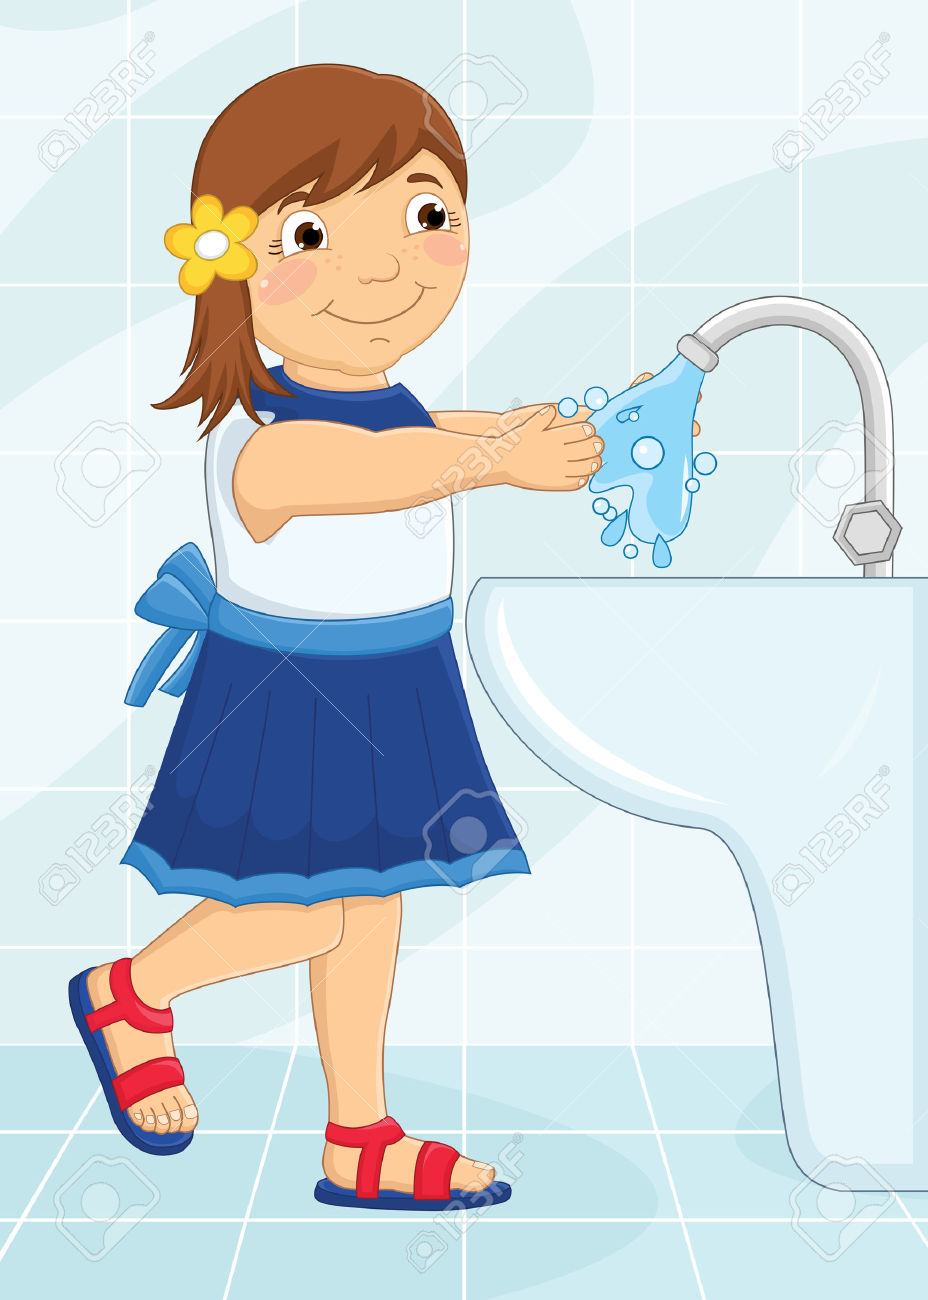 Girl washing hands clipart banner freeuse stock Girl Washing Hands Illustration Royalty Free Cliparts, Vectors ... banner freeuse stock